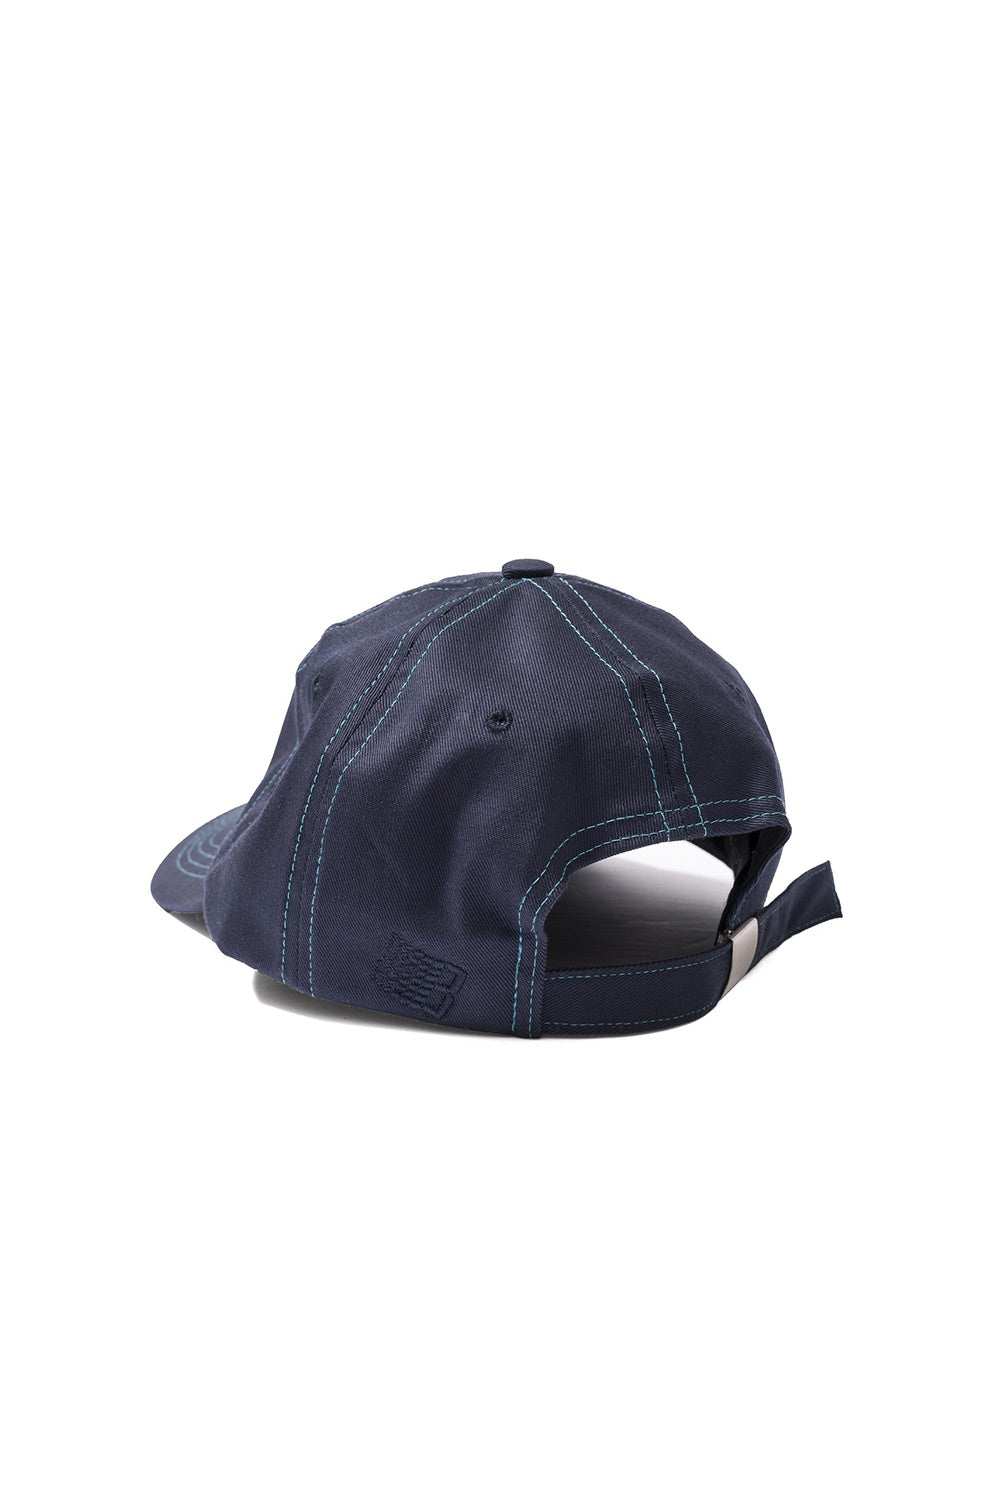 Bronze 56K Bolt Boy Hat - Navy